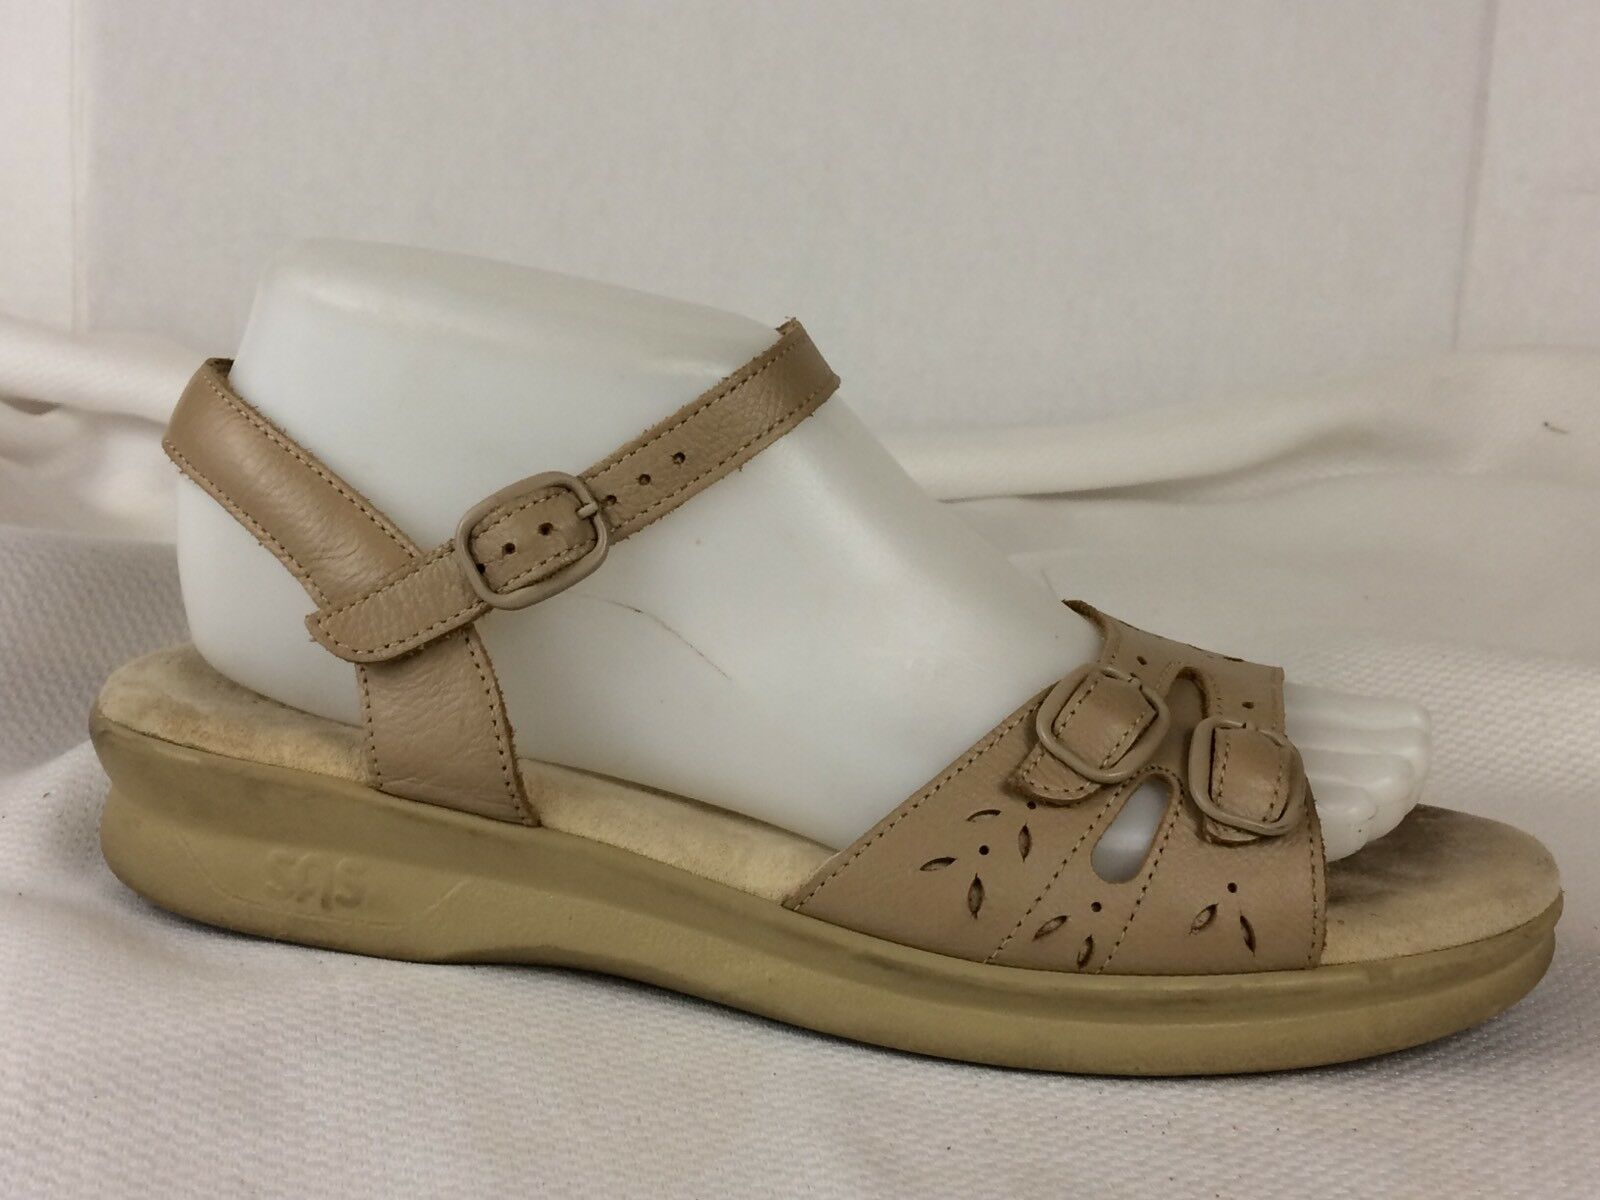 SAS Tripad Womens 8 NARROW Comfort Sandals Beige Ankle Strap shoes Leather Wedge